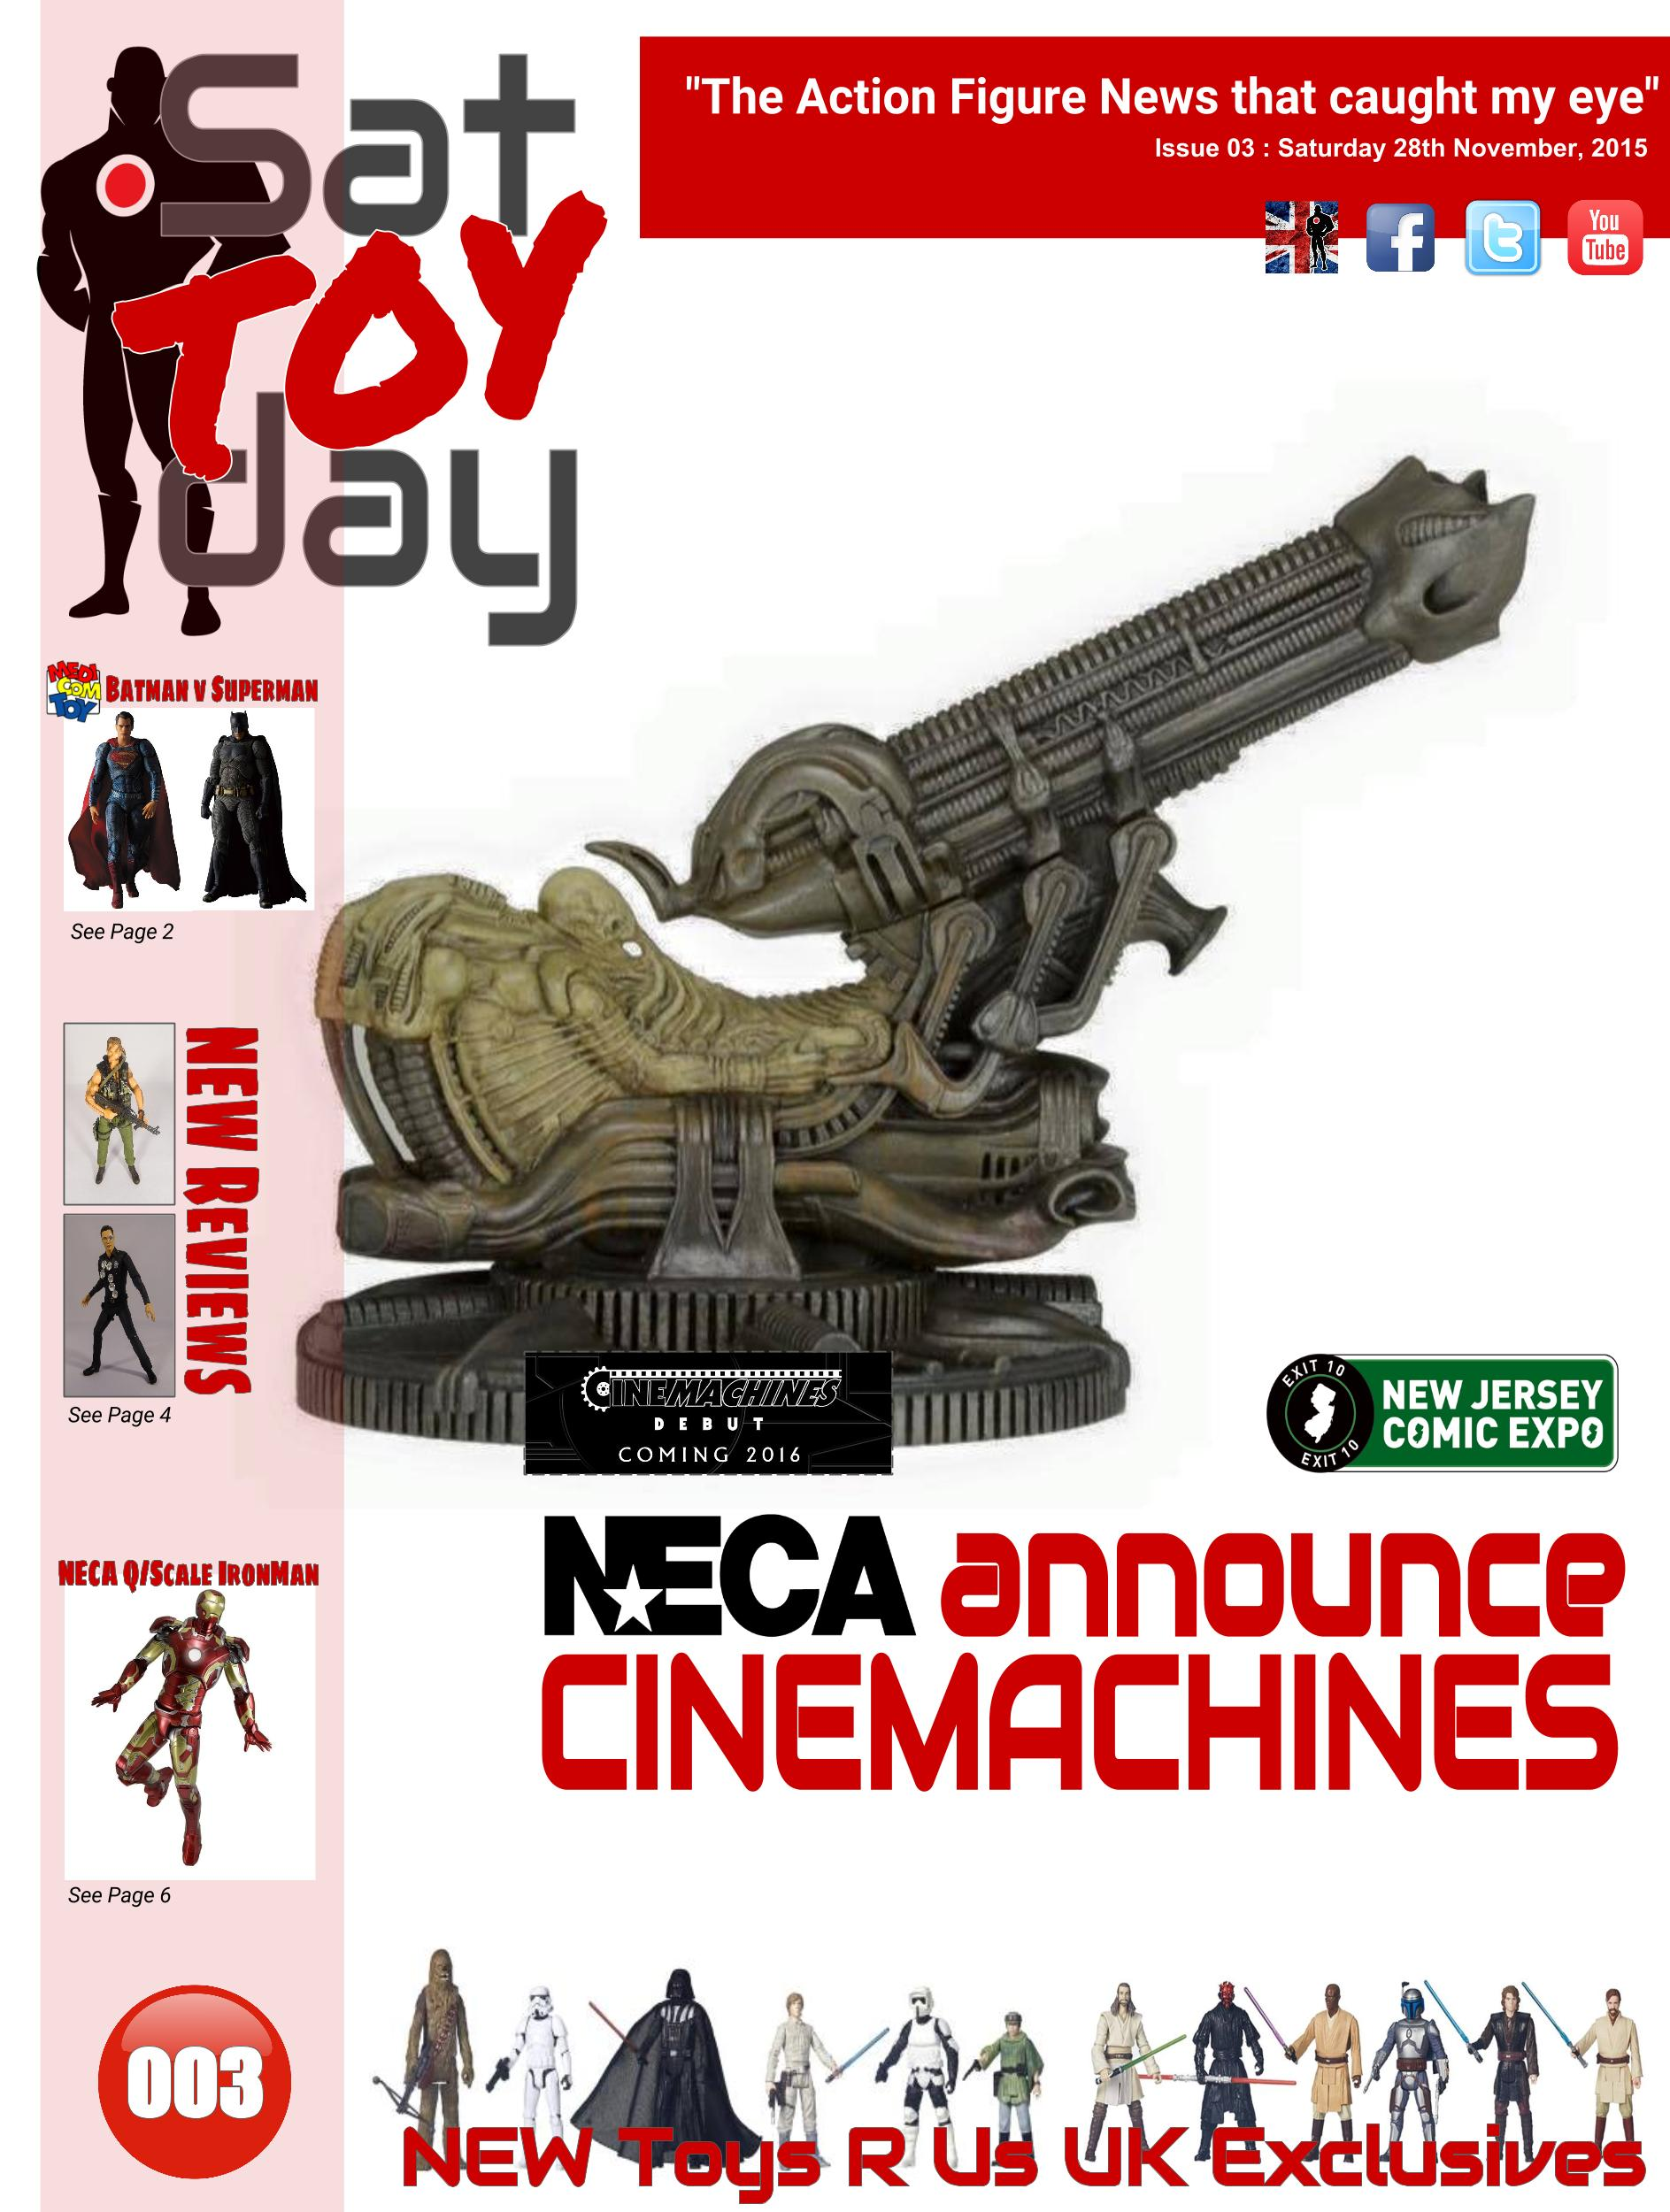 003 Action Figure Sat-TOY-day News, 28th November 2015